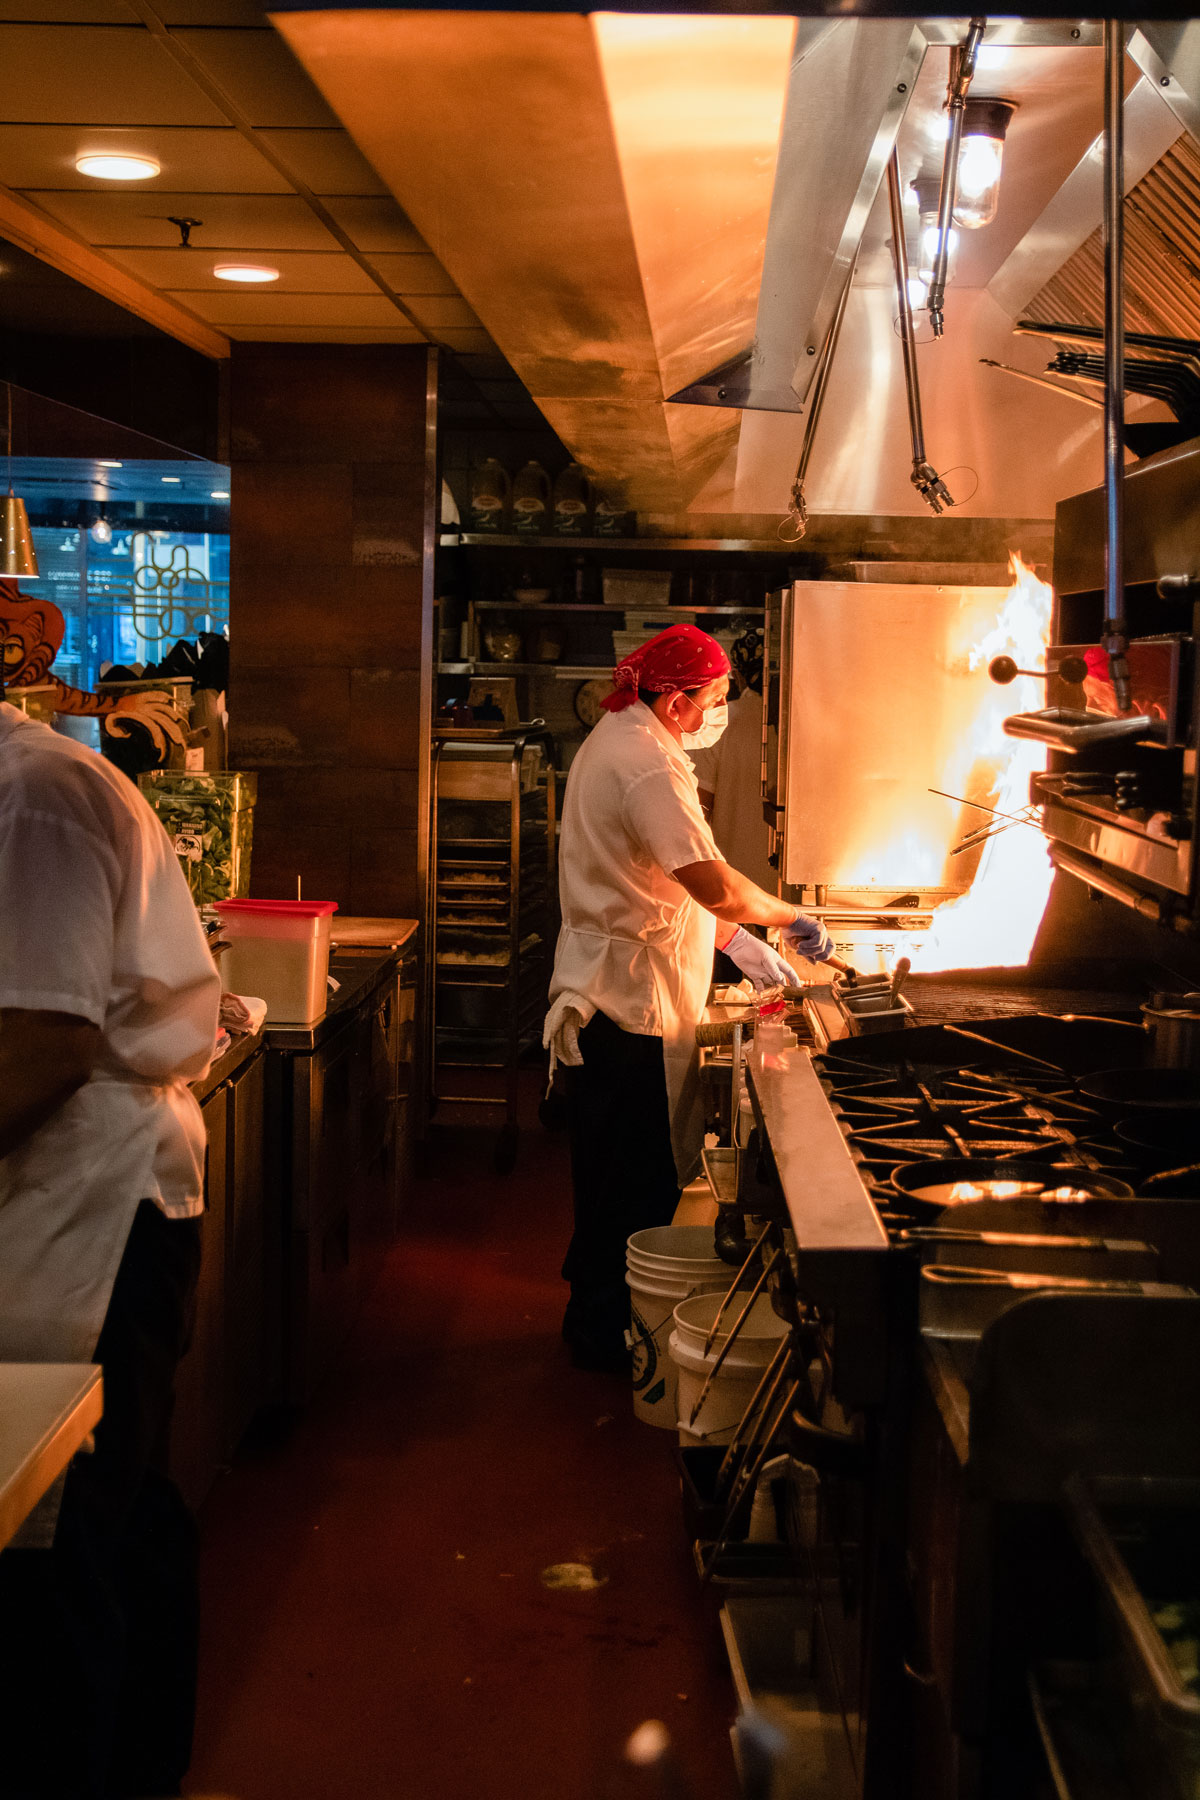 Chefs working in the restaurant kitchen of Myers + Chang.